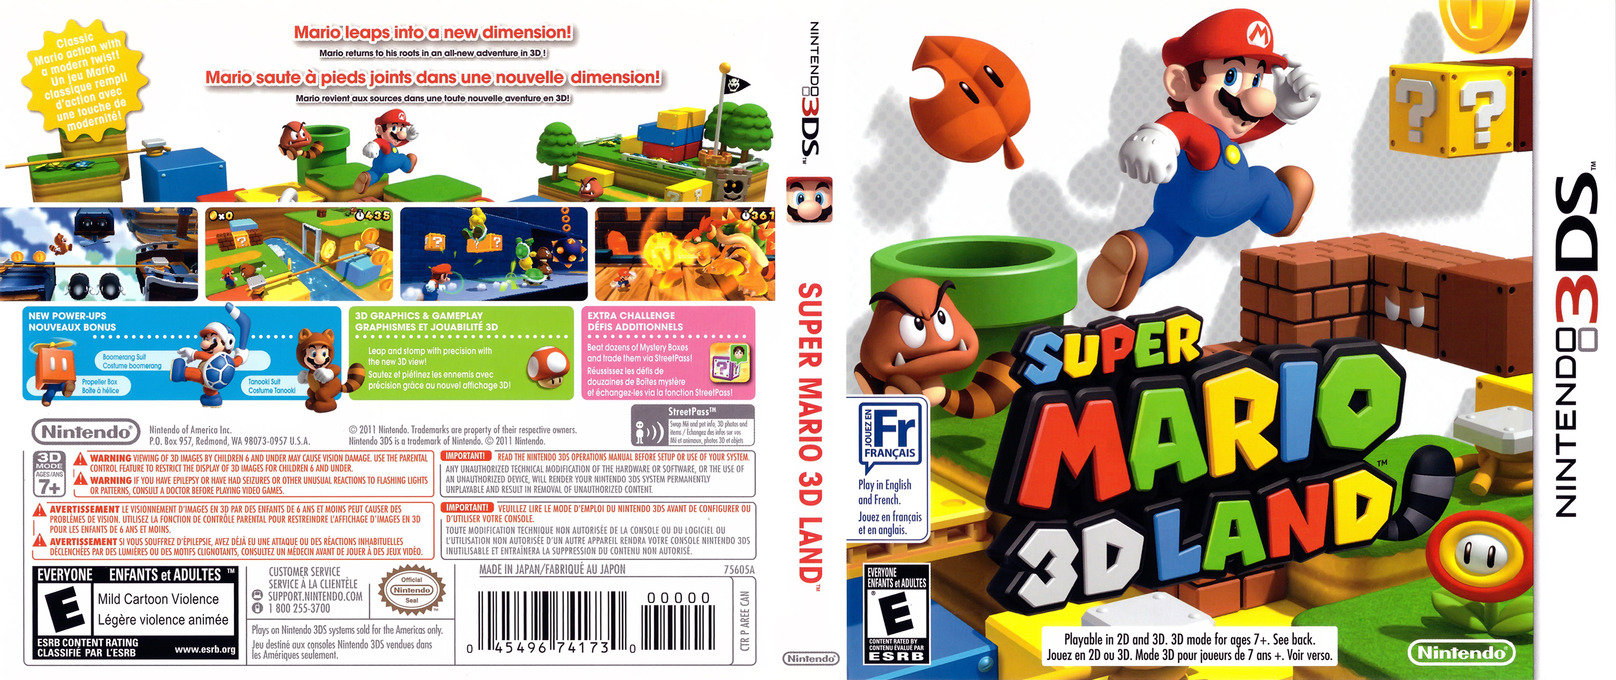 Super Mario 3D Land 3DS coverfullHQ (AREE)